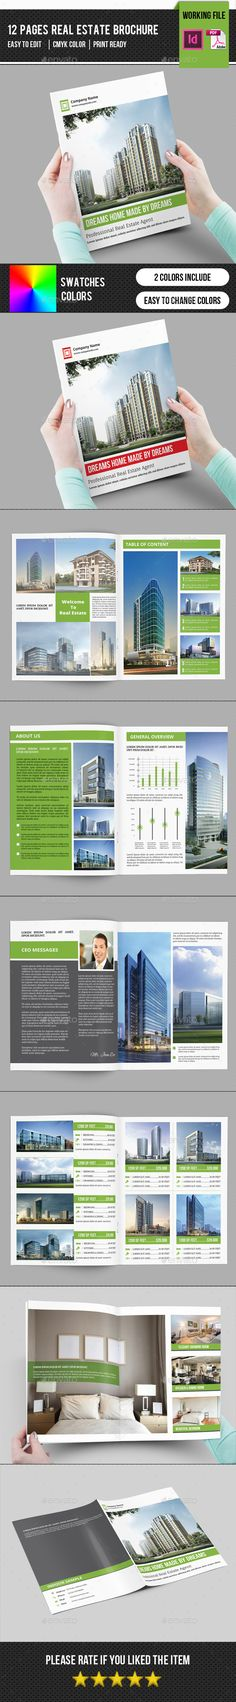 Real Estate Brochure TemplateV304 — InDesign INDD #icons #typography • Available here → https://graphicriver.net/item/real-estate-brochure-templatev304/12720443?ref=pxcr